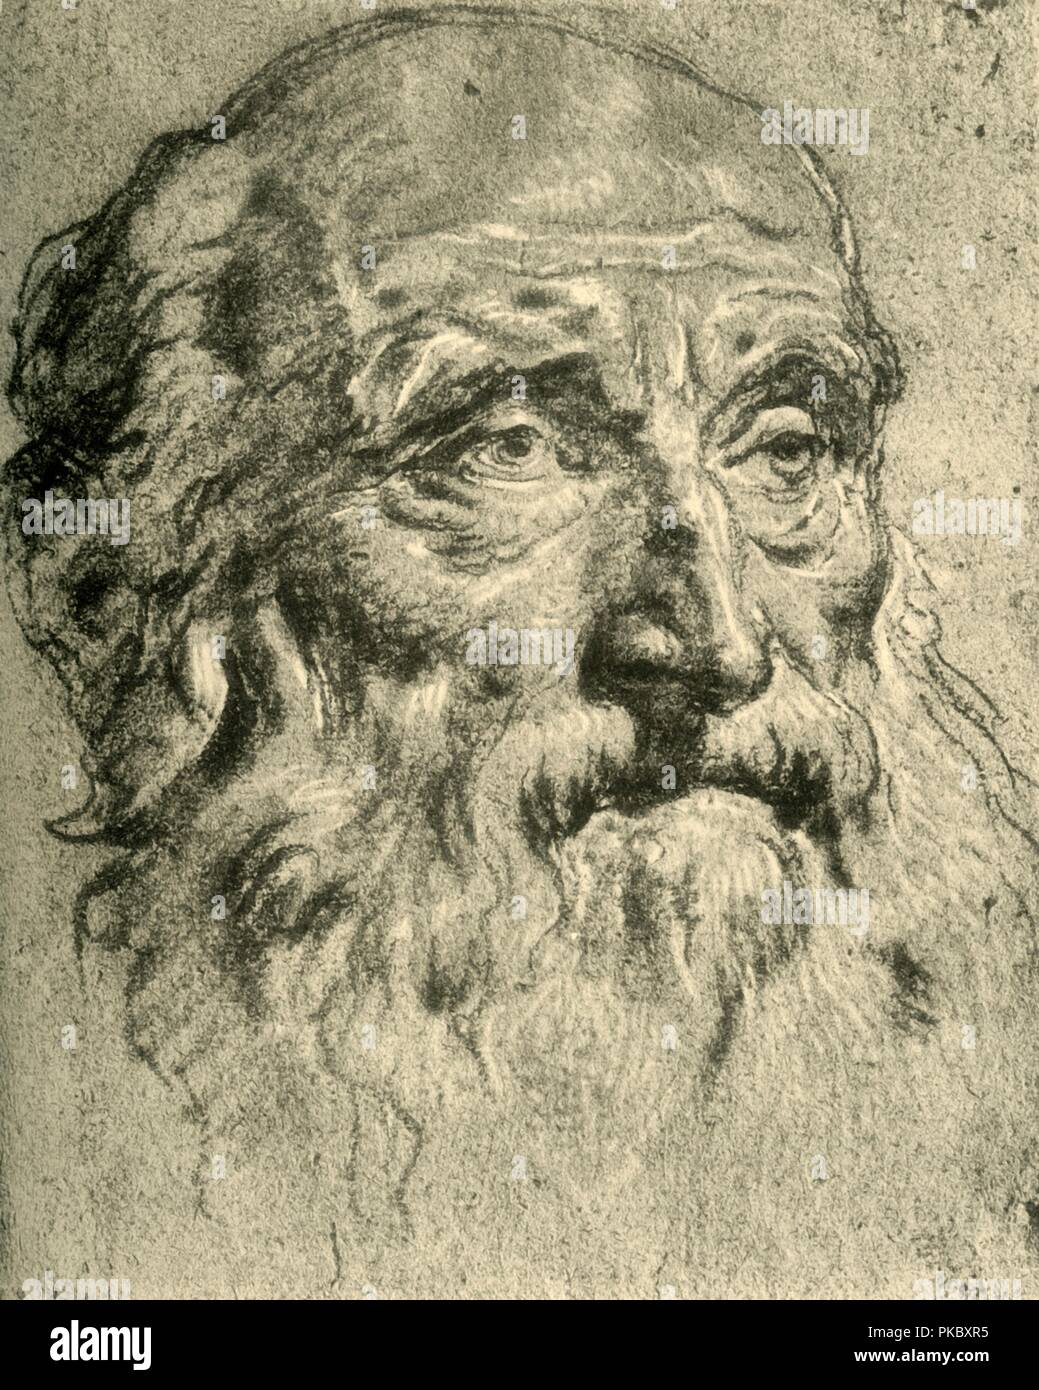 'Head of an Old Man', mid 18th century, (1928). Chalk on paper. At one time known to have been in the collection of the Staatliche Sammlungen, Weimar, Germany. Italian Venetian painter and printmaker Giovanni Battista Tiepolo (1696-1770), worked not only in Italy, but also in Germany and Spain. He was commissioned to carry out frescoes in churches and palaces, and was elected President of the Academy of Padua. As well as his large-scale majestic works, he also produced etchings and oil paintings, and is widely regarded as one of the most important artists of the period. Illustration from The D - Stock Image